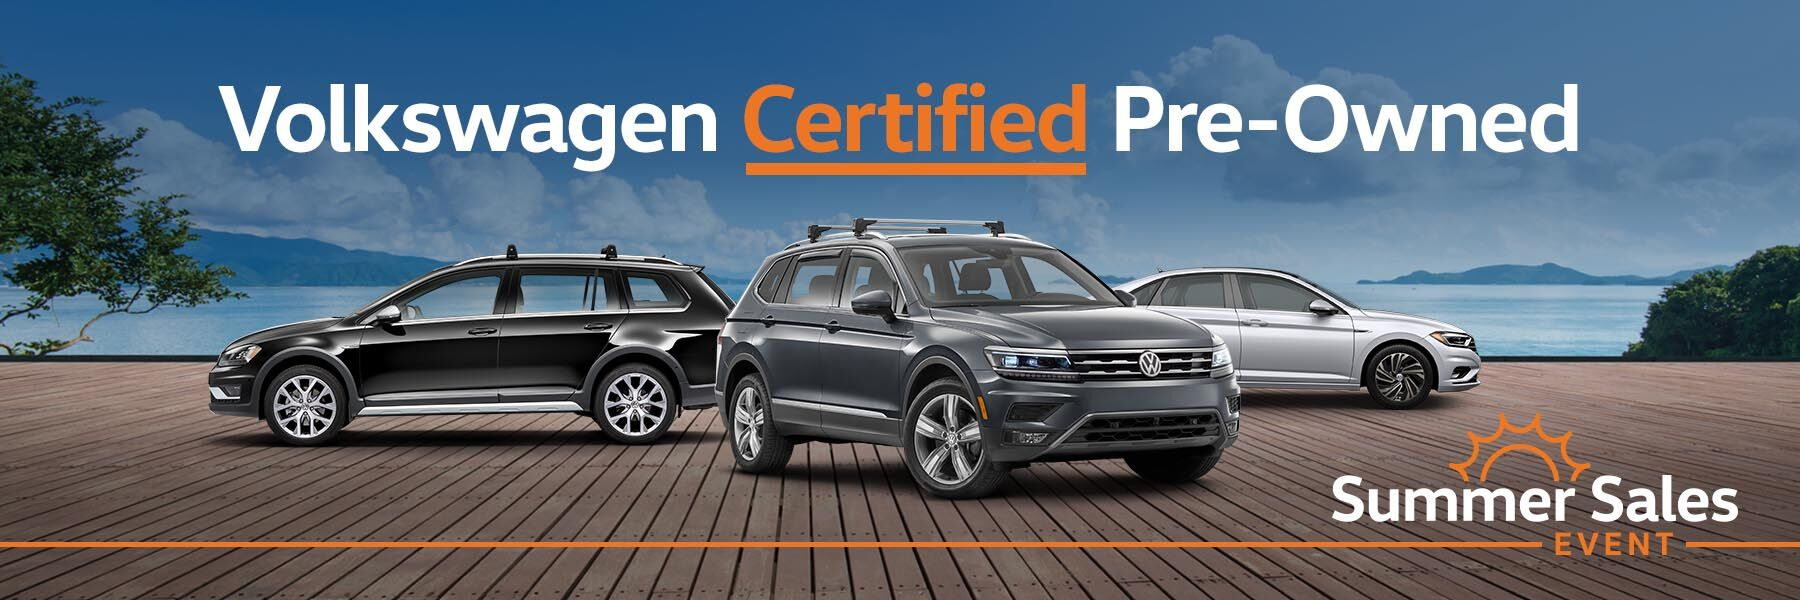 Volkswagen Certified Pre-Owned in Mason City, IA